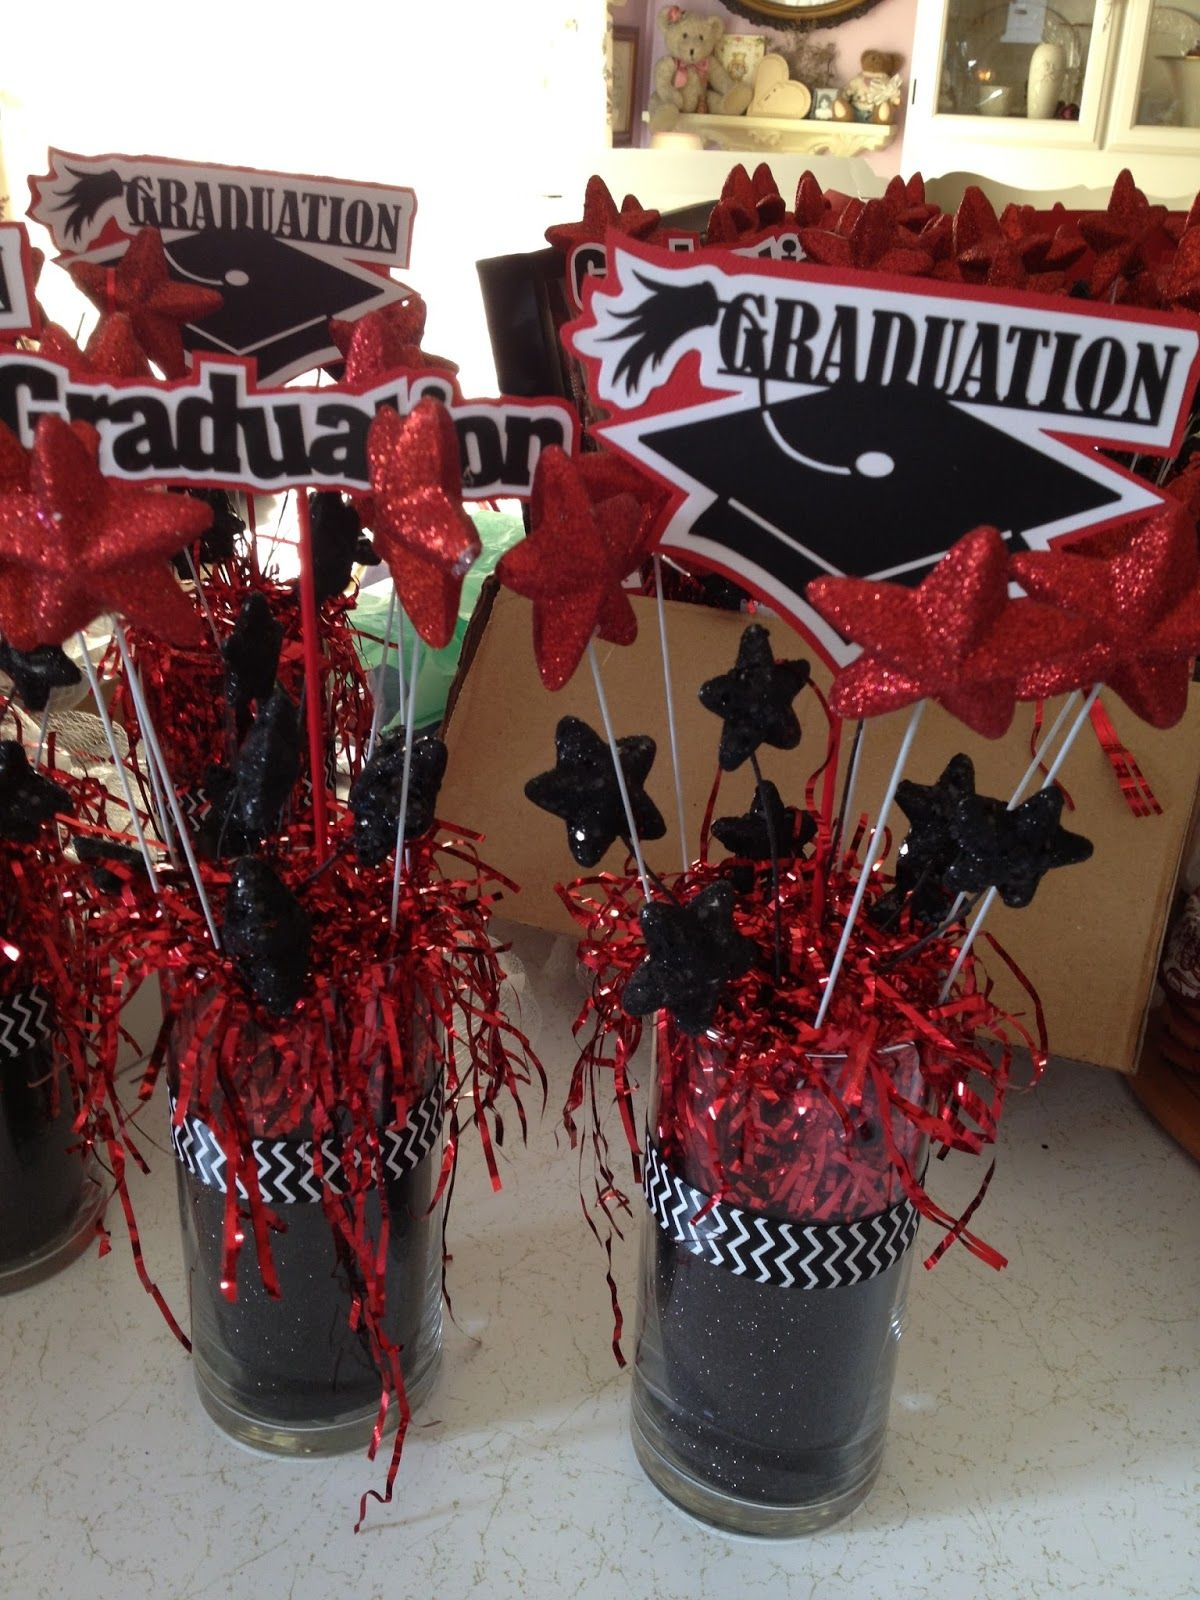 title | Graduation Centerpiece Ideas